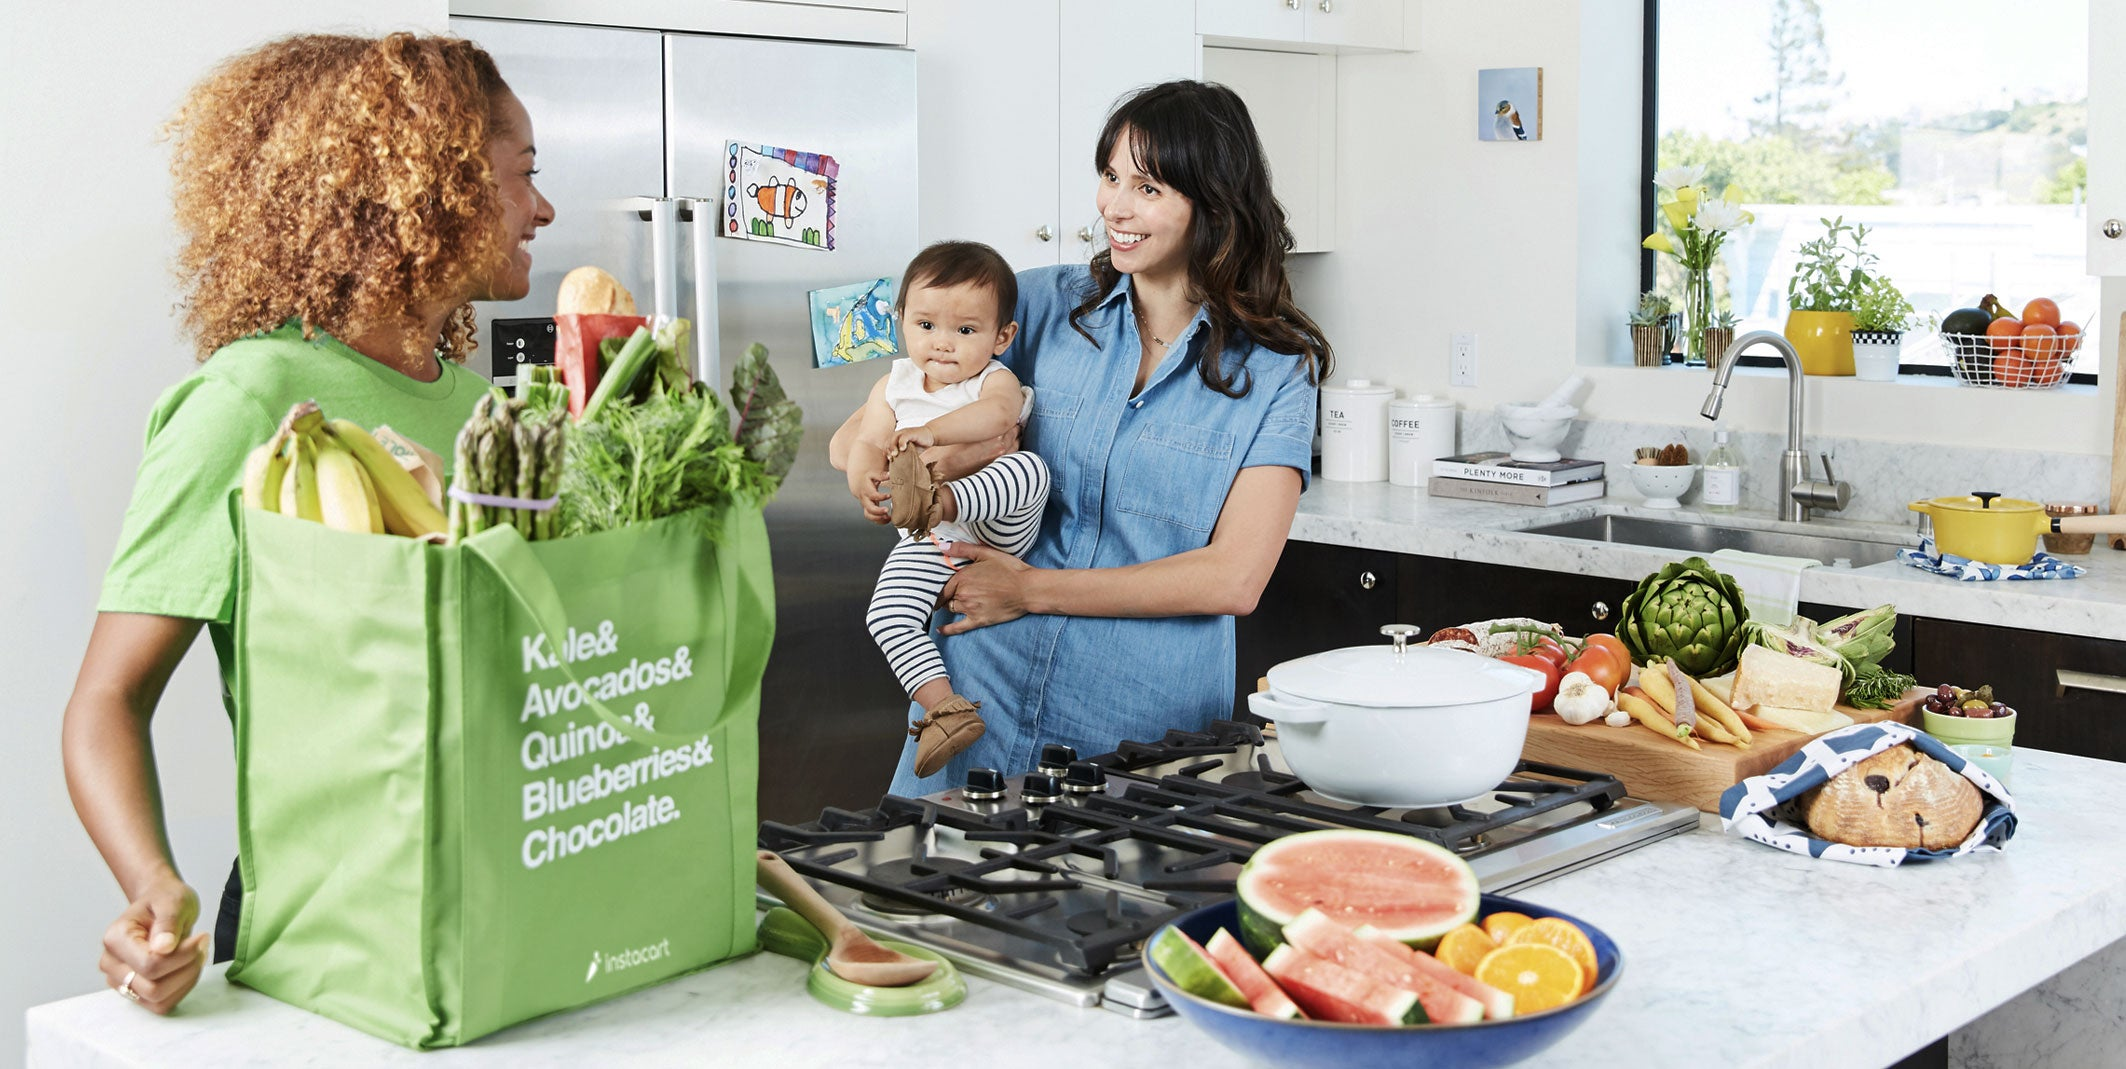 The Gordon Food Service Store groceries you love, delivered to your door. Same-day delivery by Instacart.